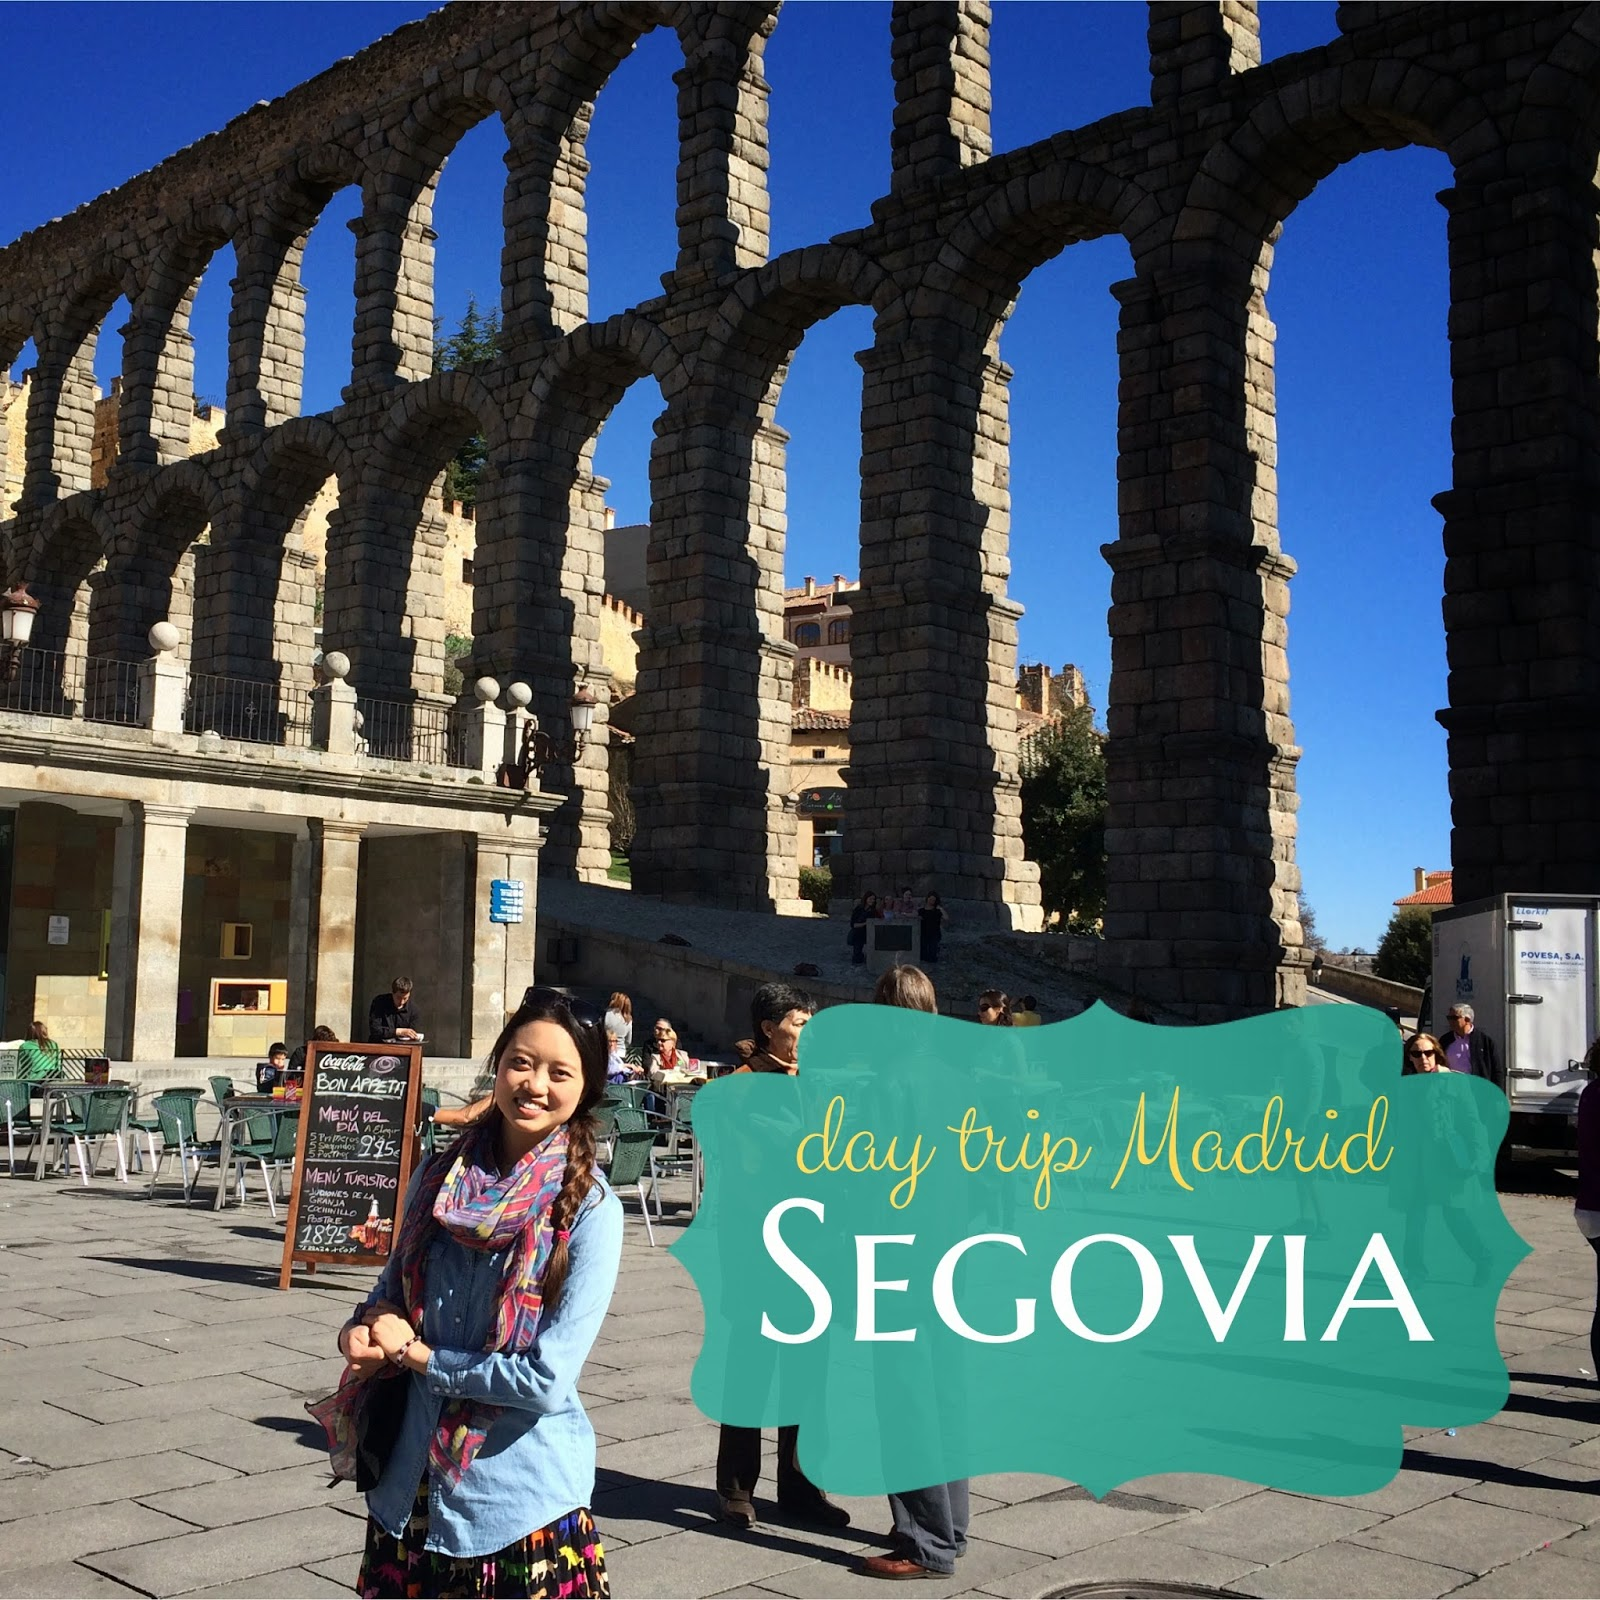 http://melthemidnightbaker.blogspot.com/2014/06/segovia-close-to-madrid-awesome.html